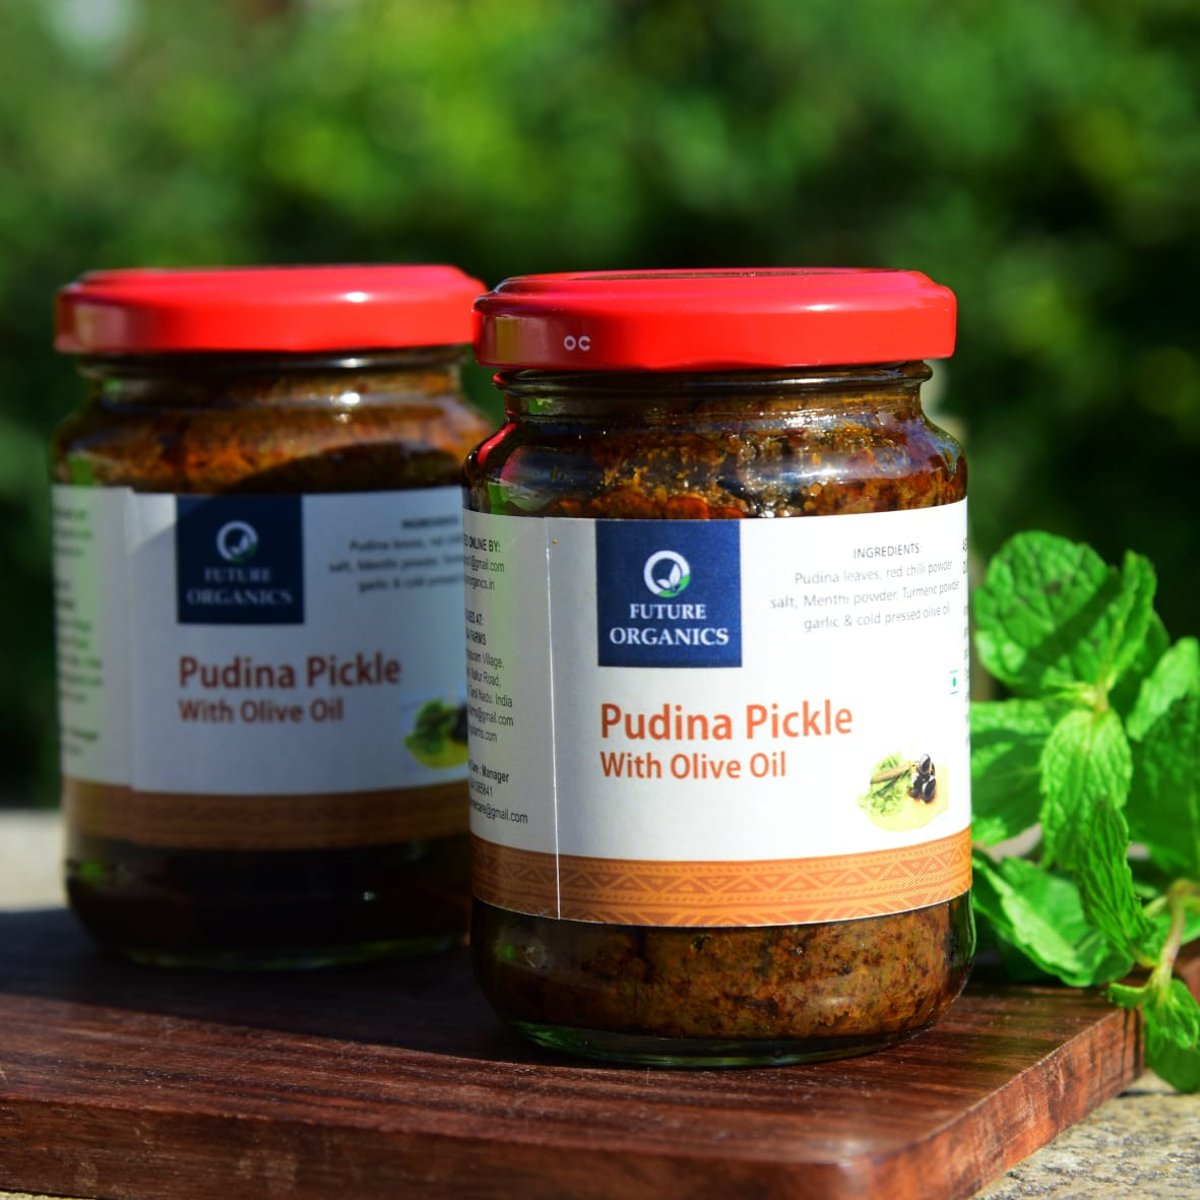 Pudina Pickle With Olive Oil(set of 2)